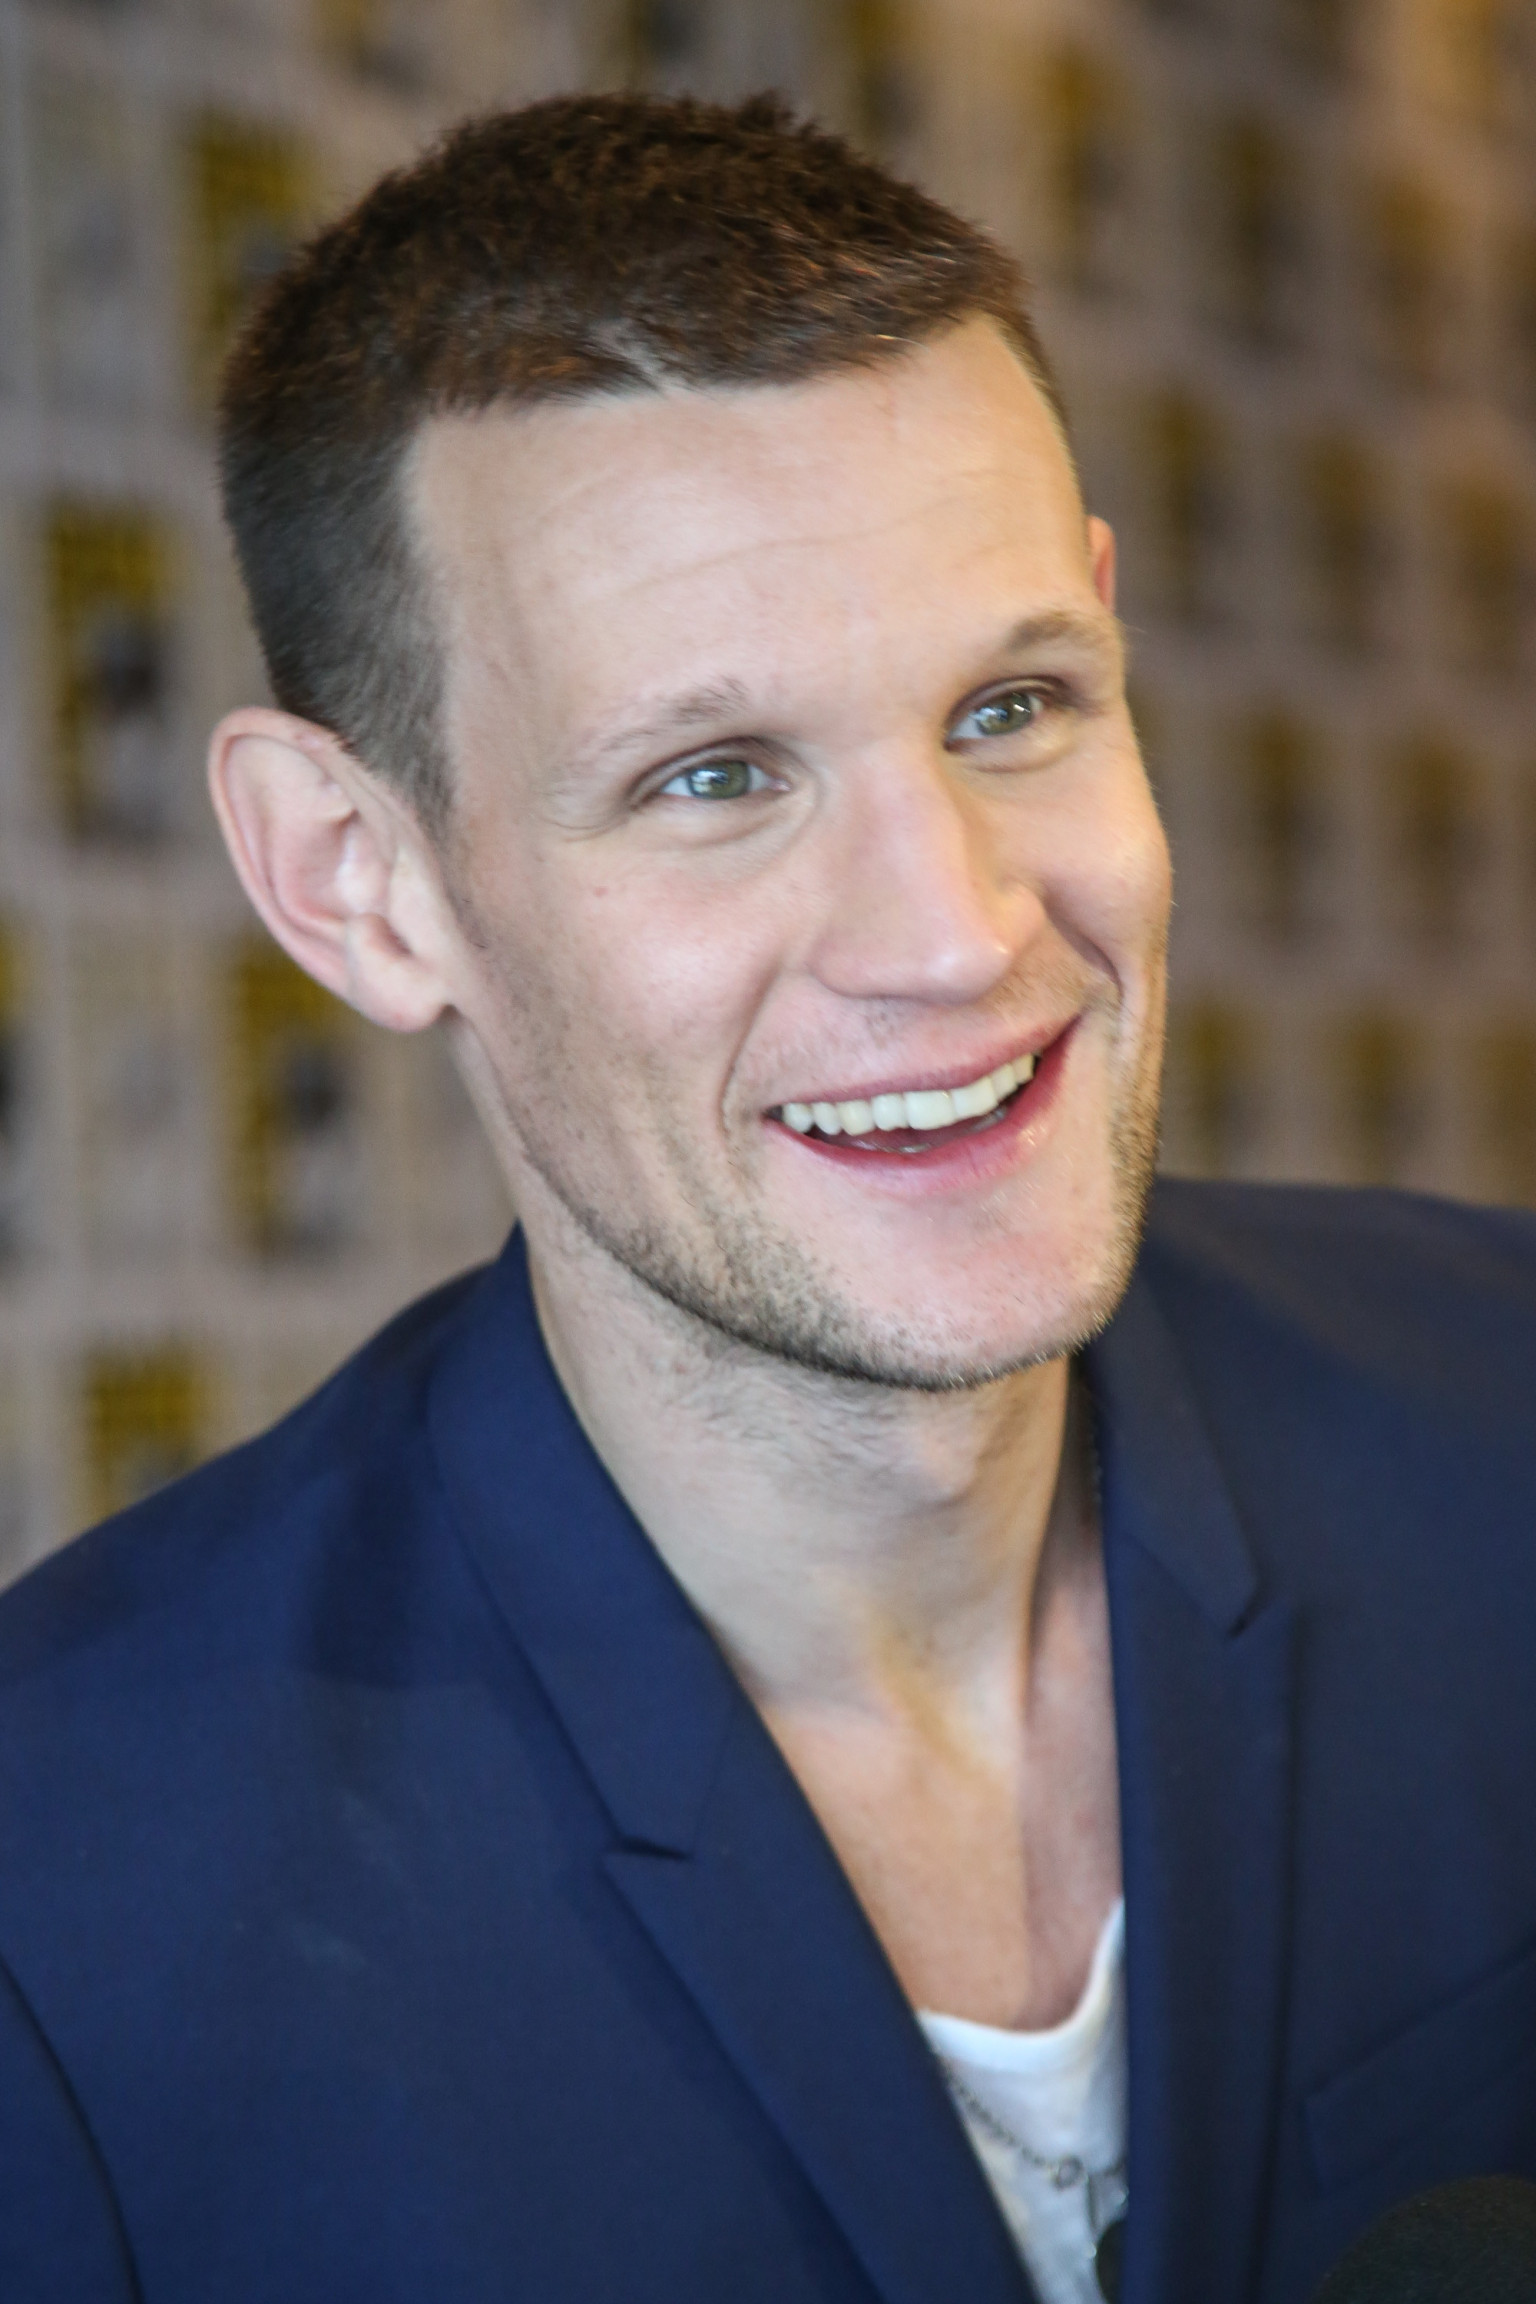 Doctor Who's Matt Smith: 'I'd Love A Role In Star Trek Or